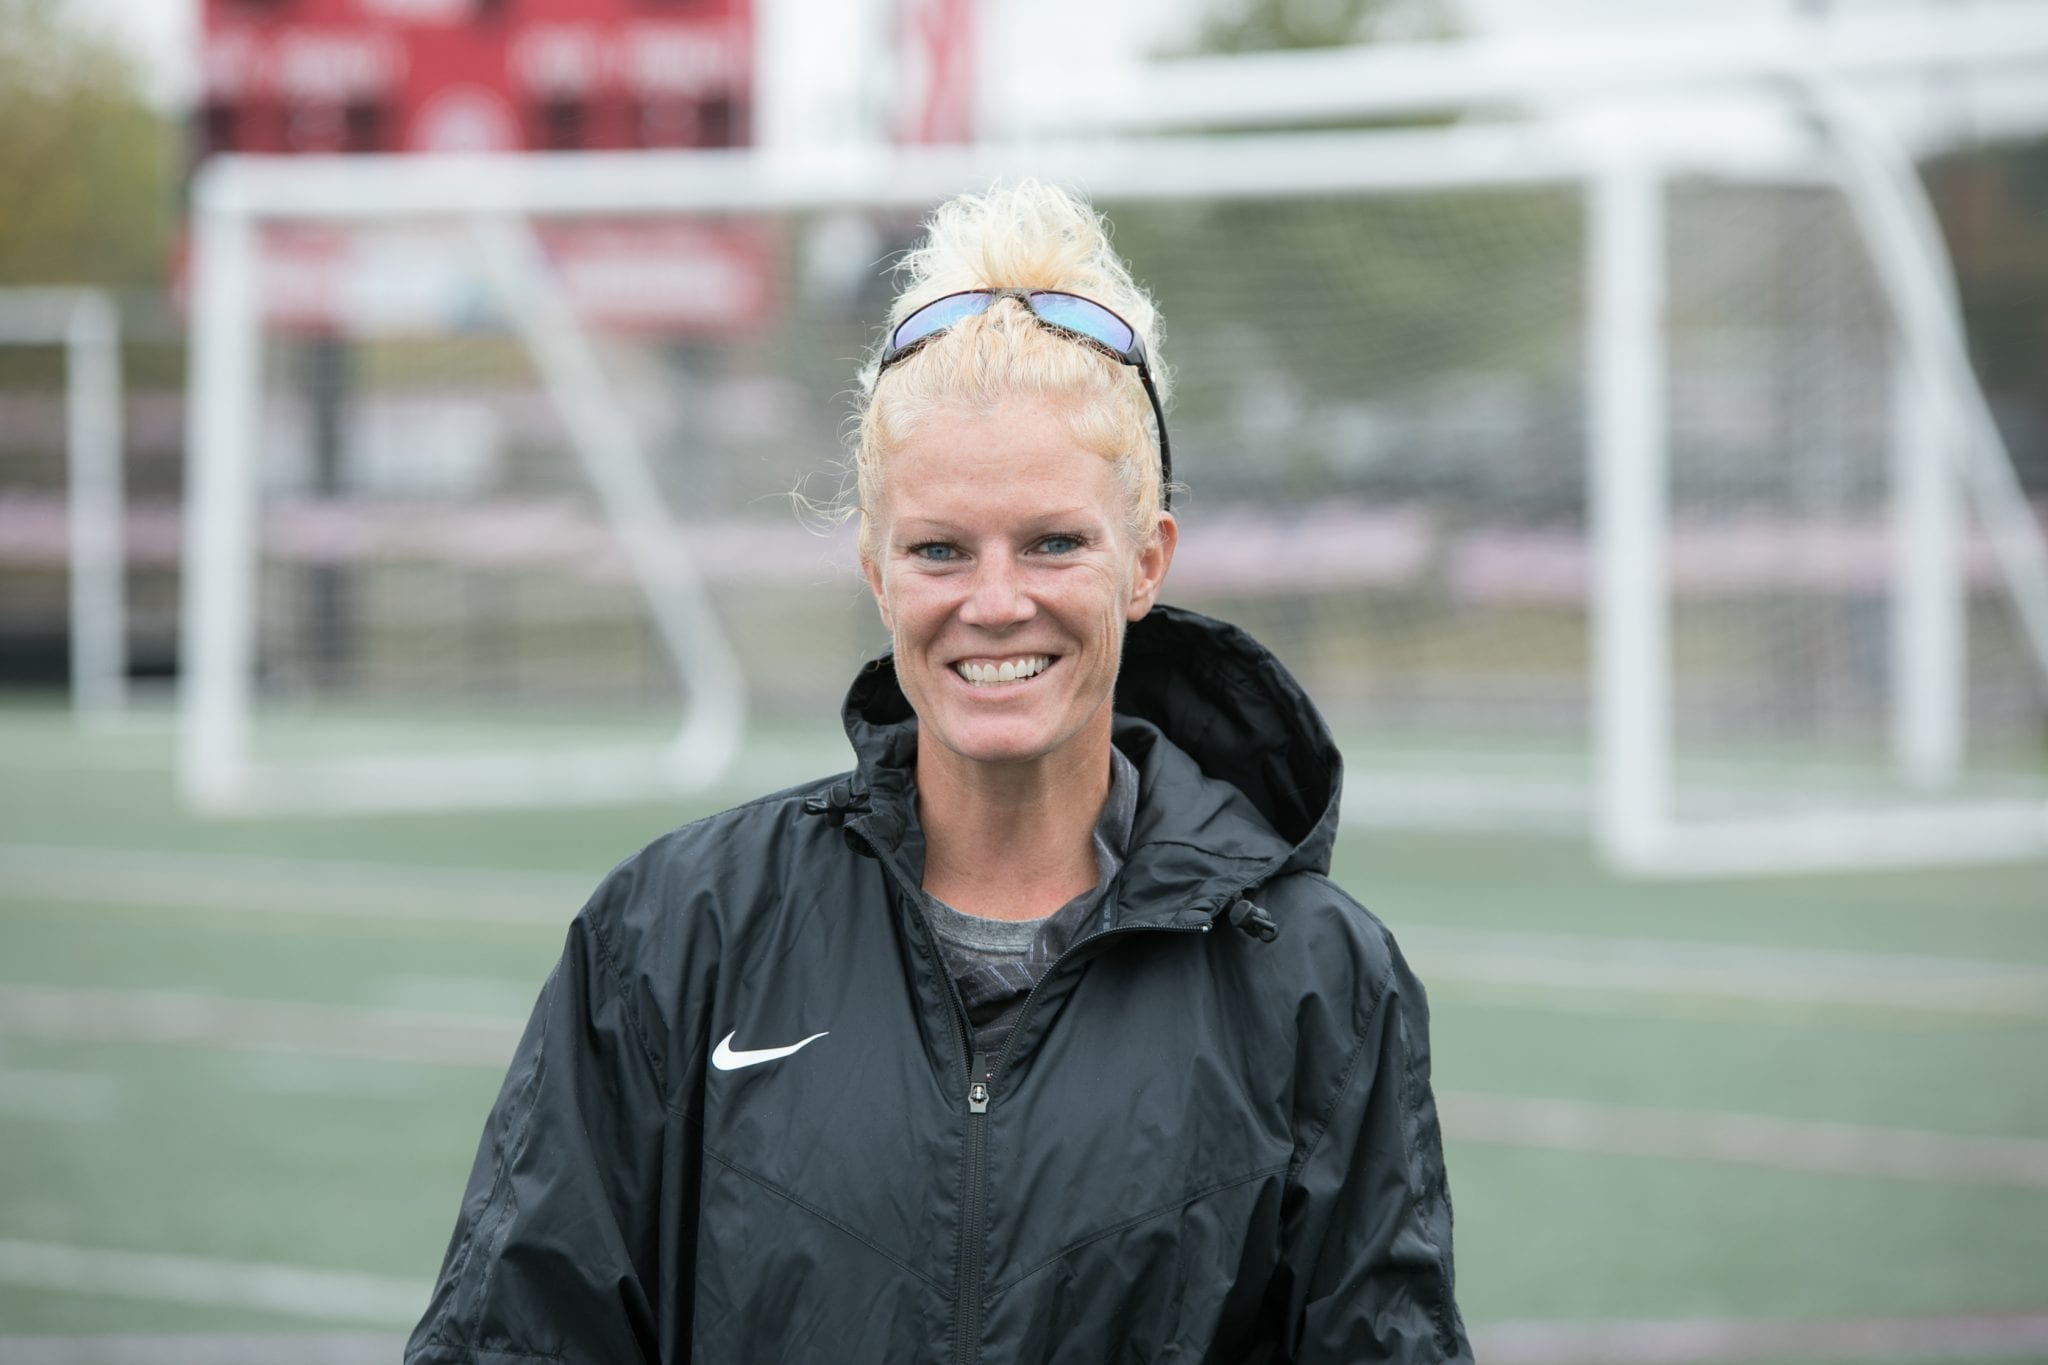 Sarah Dacey is currently the head coach of HHS girls soccer and recently started Next Level Athletic Advising with her wife Mary-Francis.